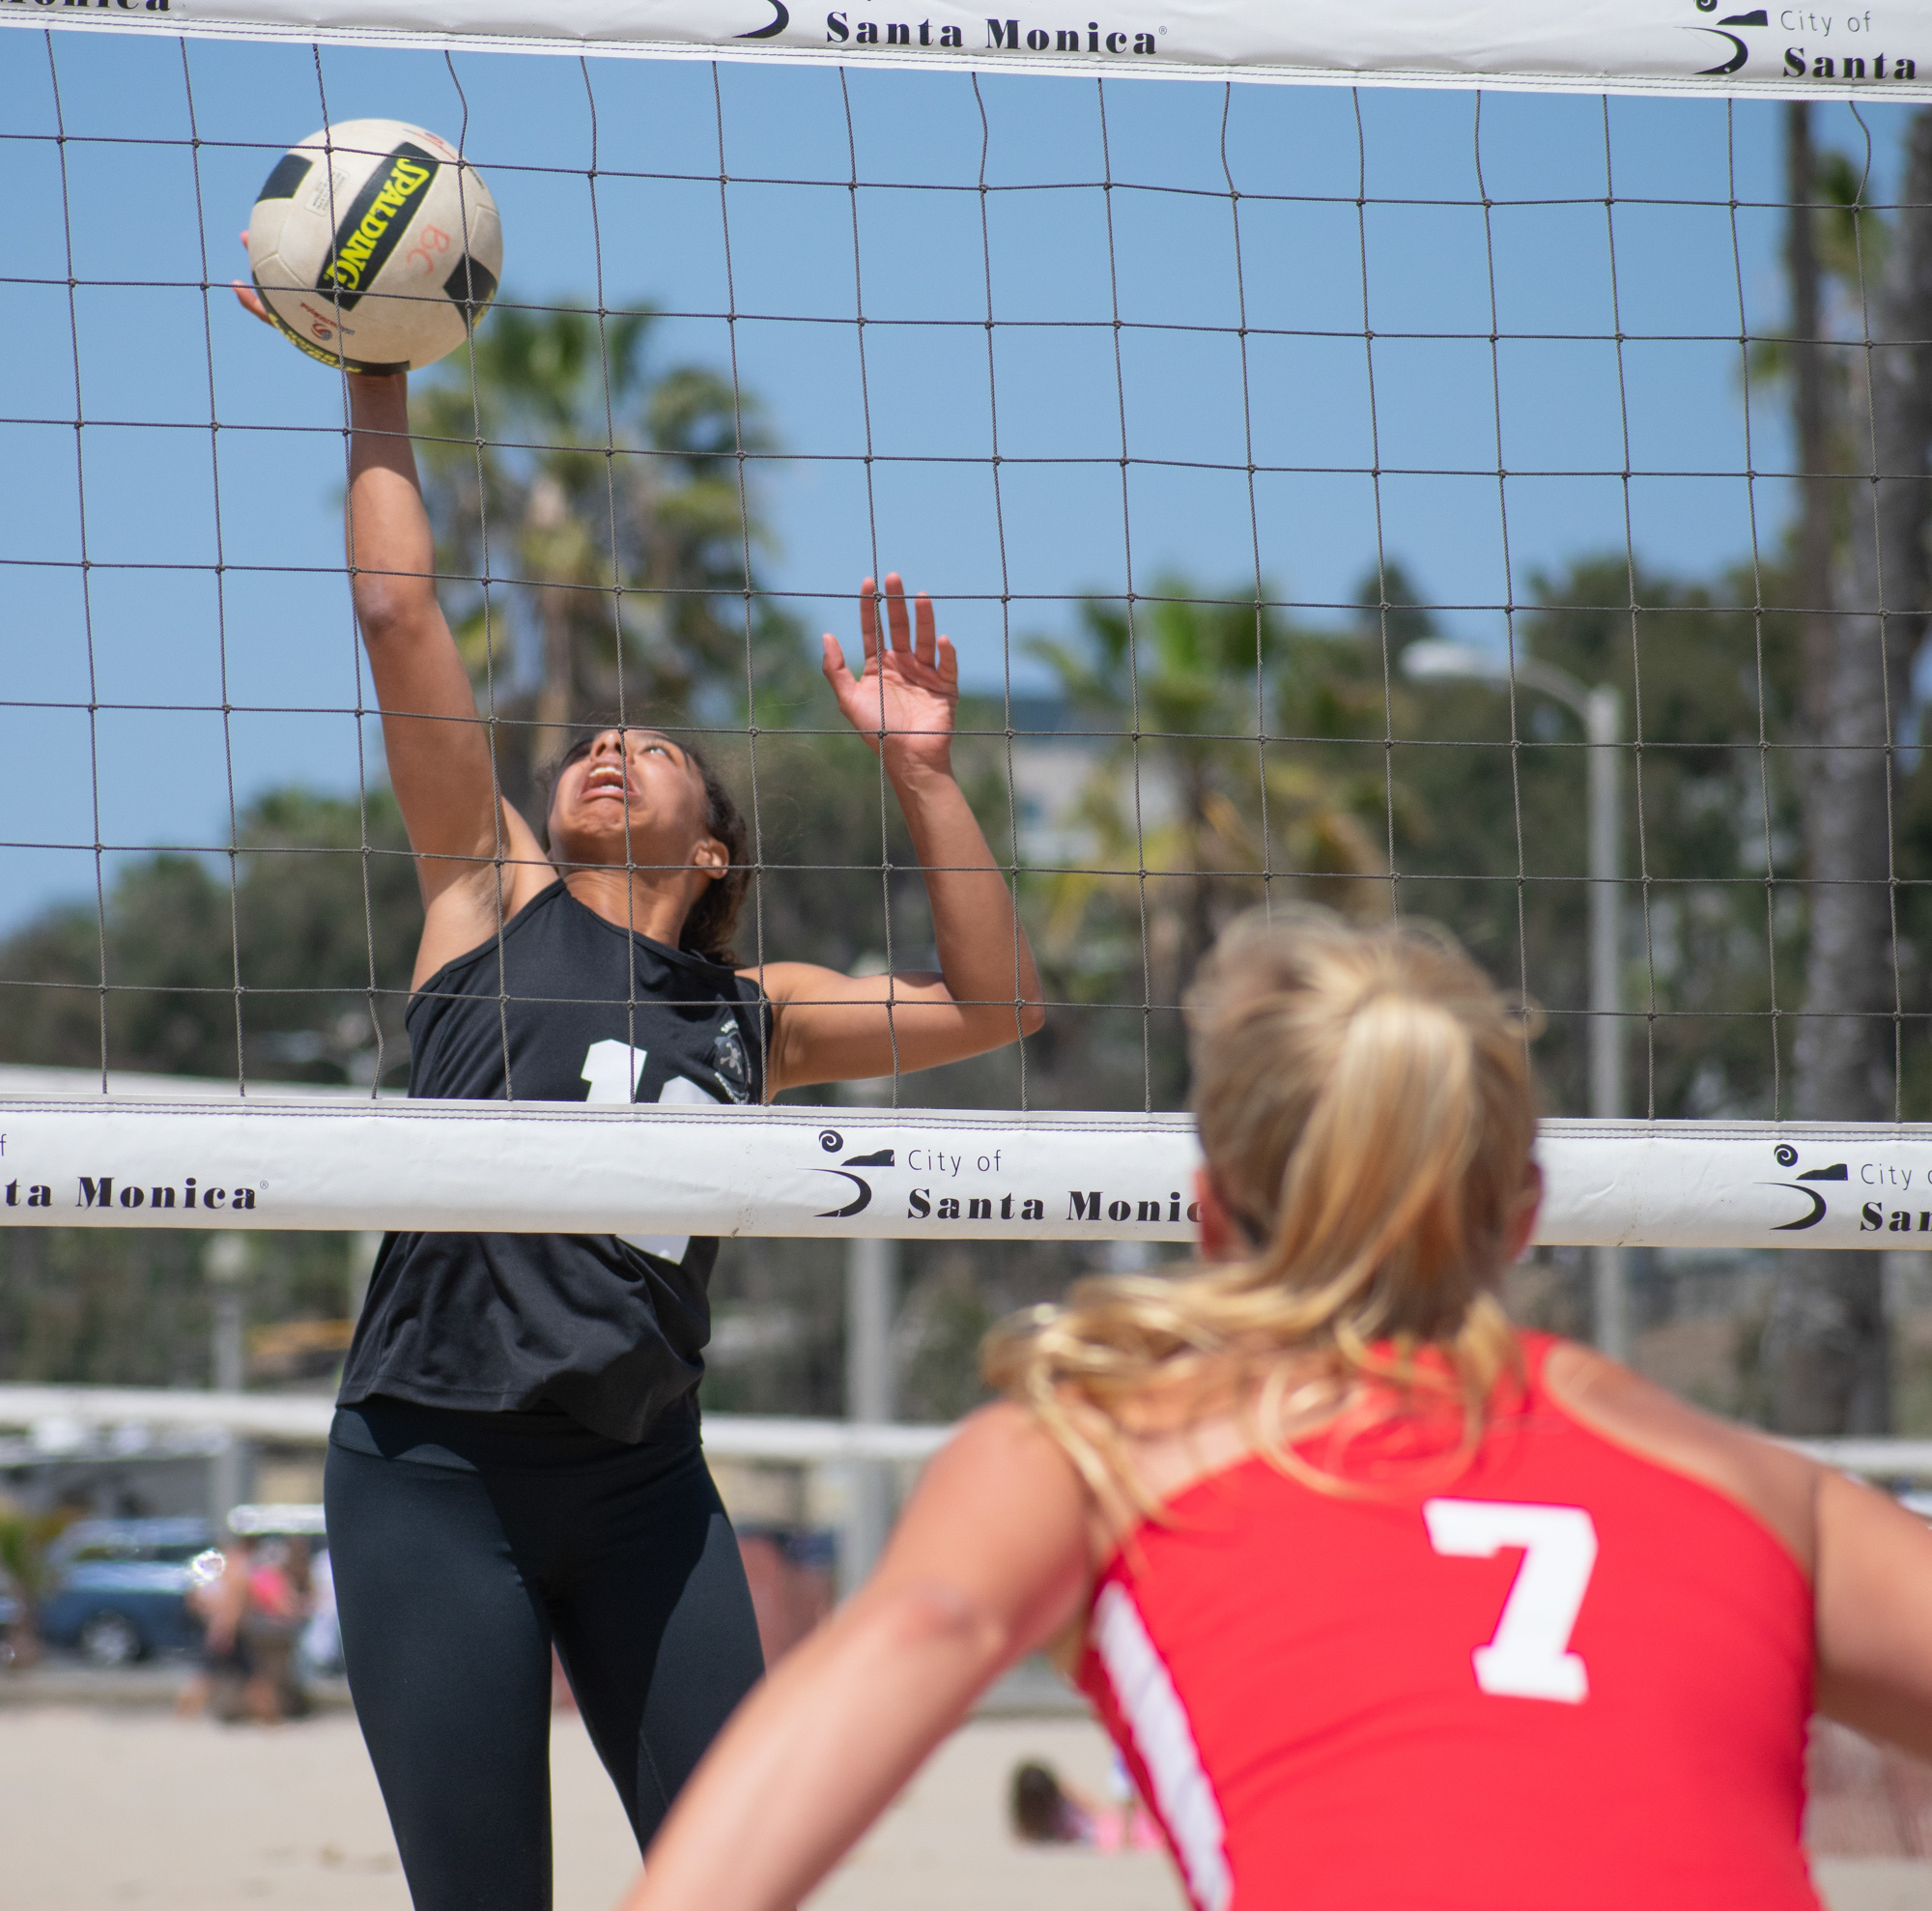 Santa Monica College Corsair Taylor Burks (#12) tries to defend against Bakersfield College Knight Haley Sanchez (#7) during a conference game of beach volleyball in court two at the Santa Monica beach on Friday, April 13, 2018 in Santa Monica, California. It was a 5-0 loss for the Corsairs, bringing their total to 2-12 for the season. (Ethan Lauren/Corsair Photo)